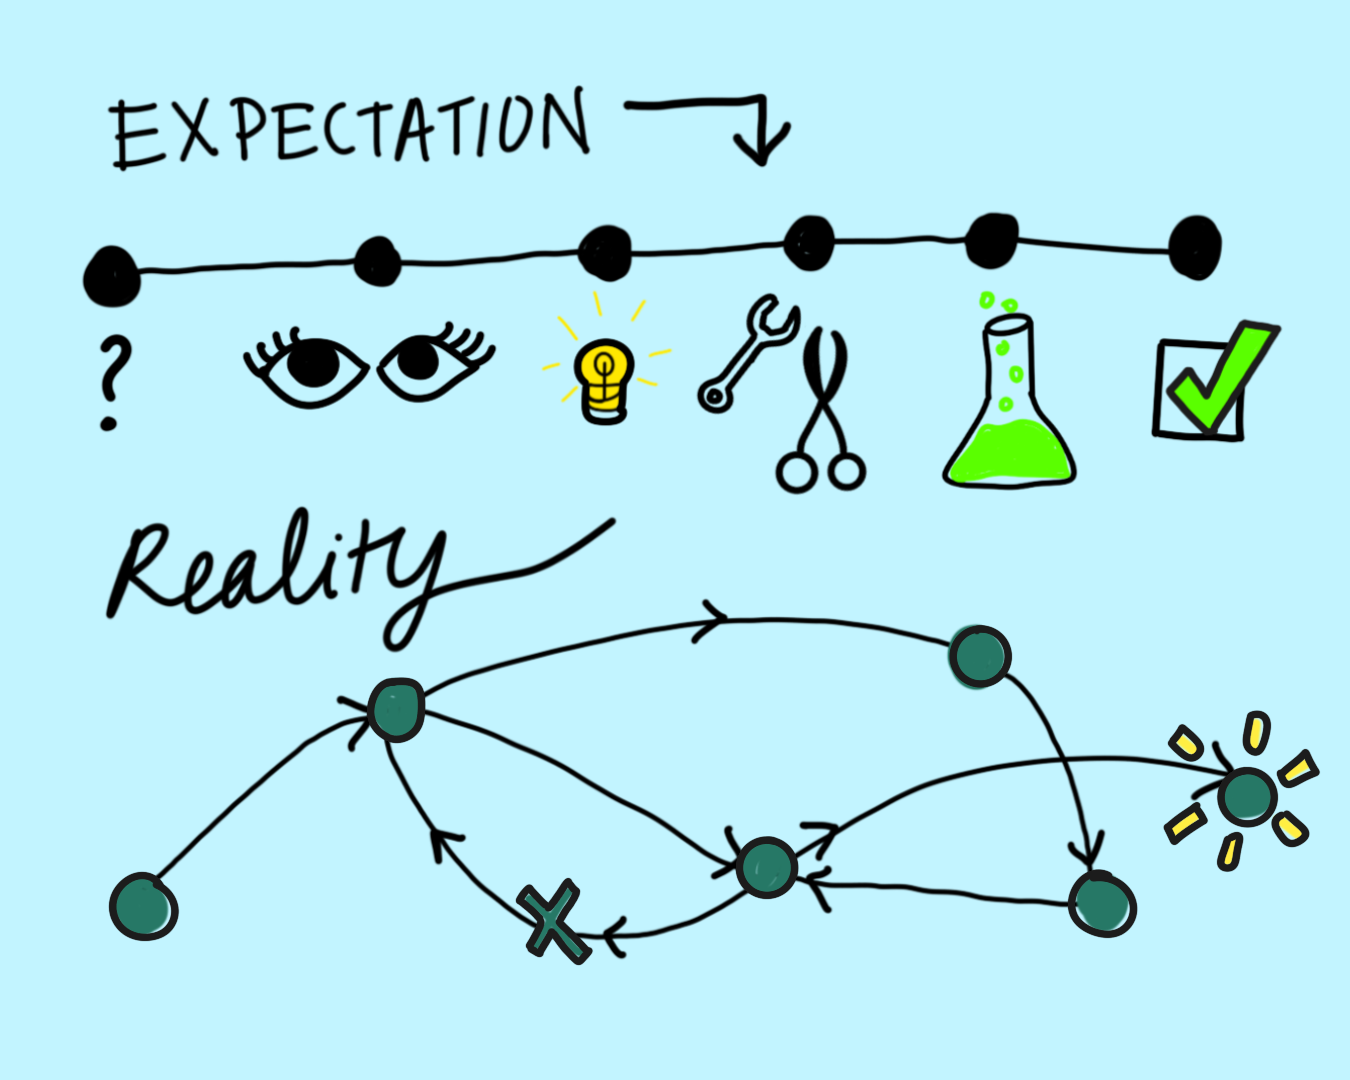 How To Apply Design Thinking To Your Business By Sarah Downing The Innovation Jul 2020 Medium